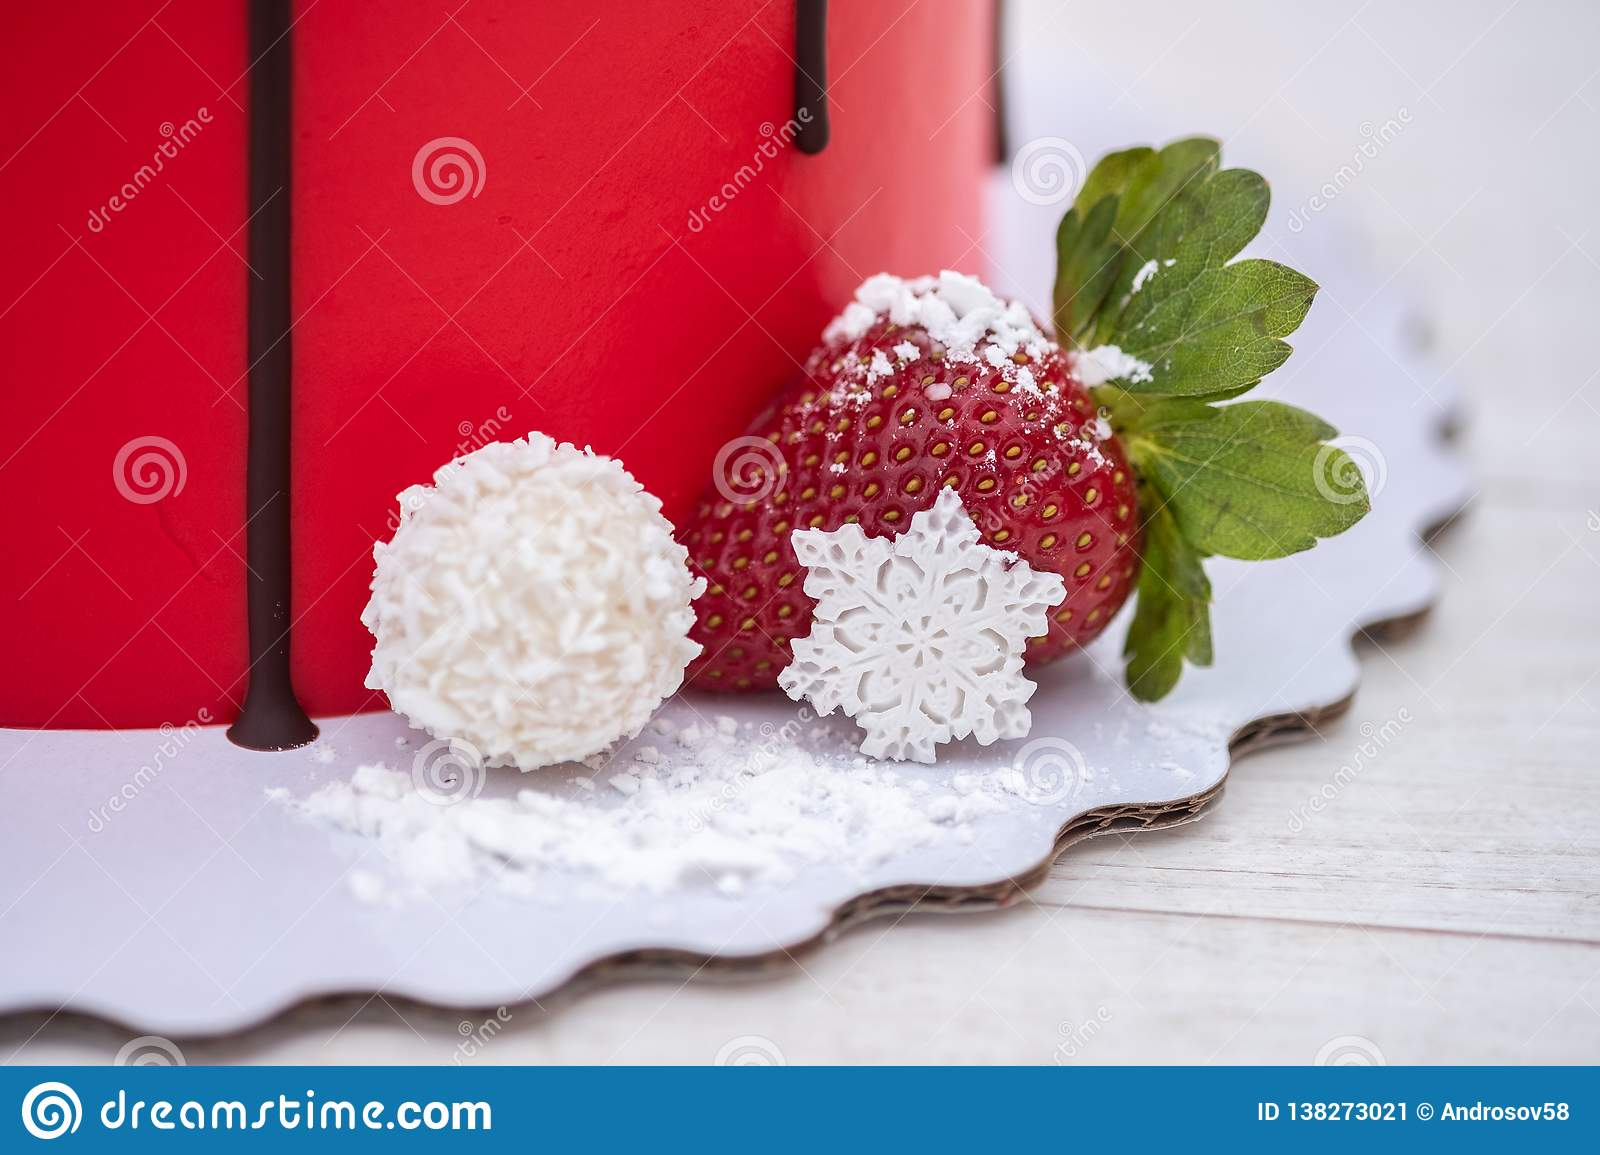 Beautiful Homemade Red Cake With Fresh Strawberry Berries On White Background